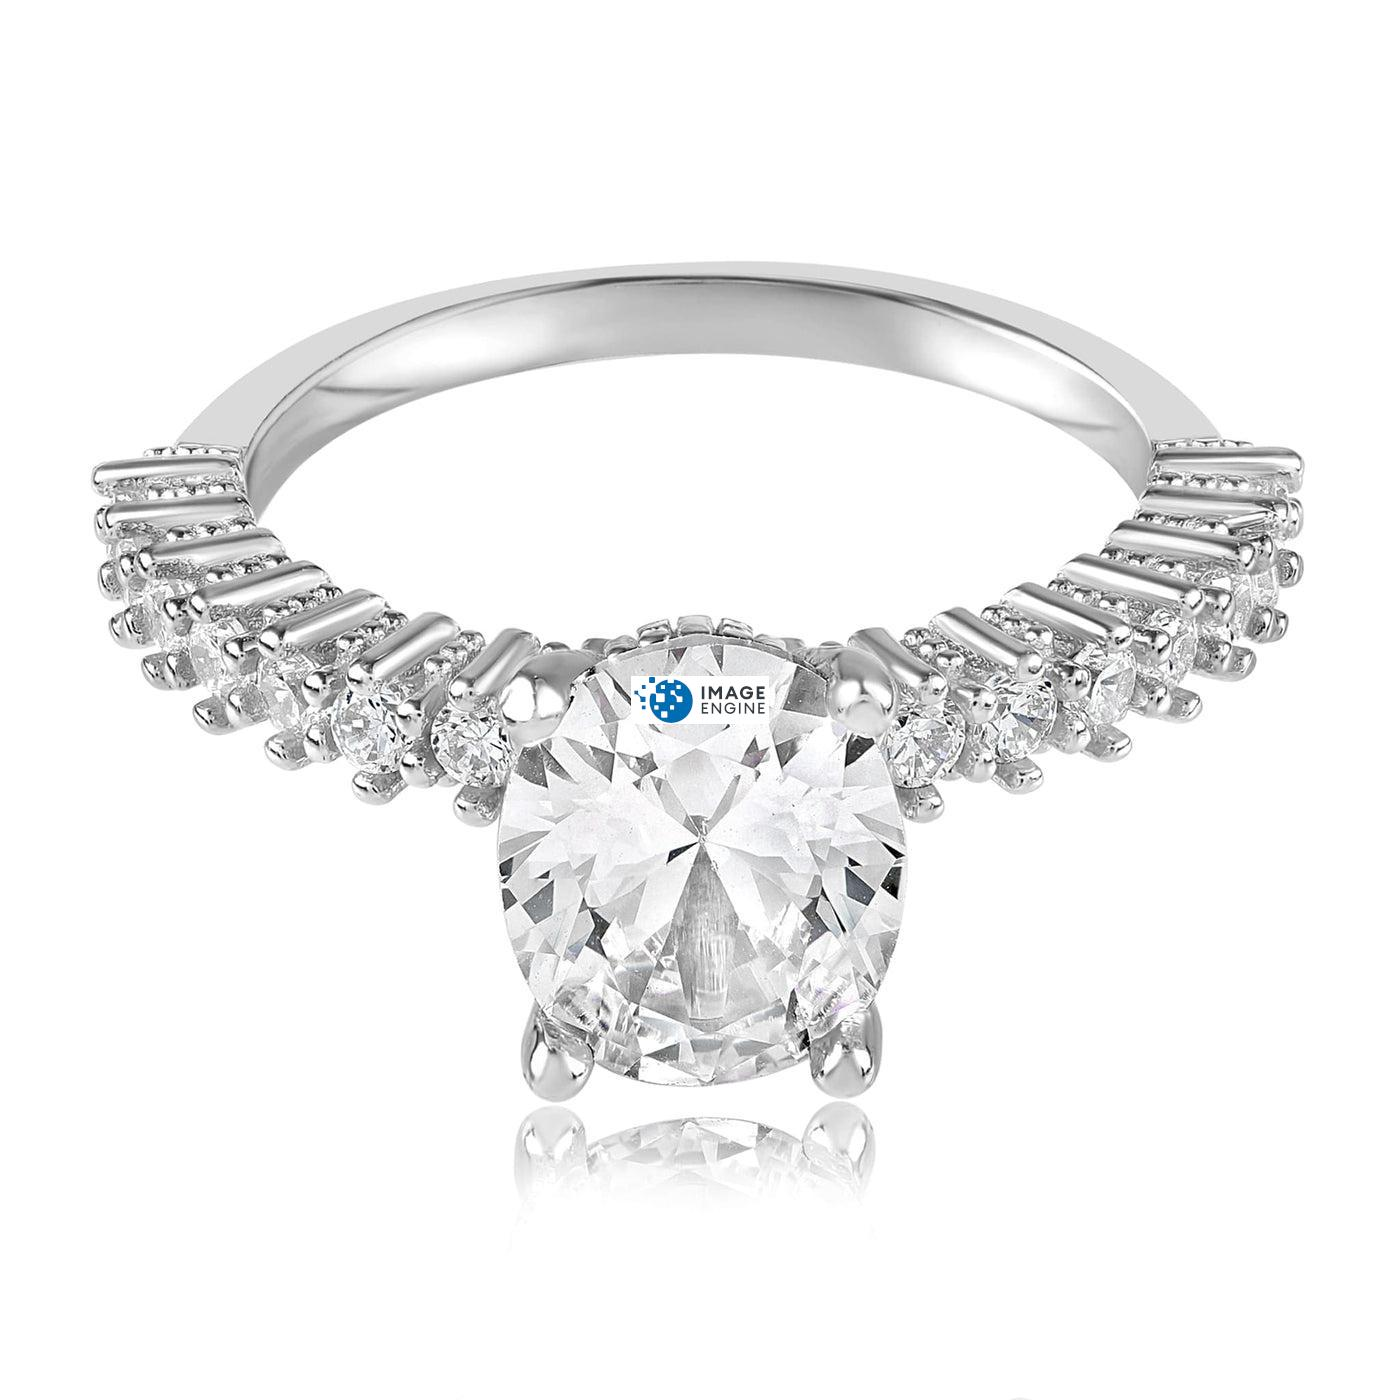 Cara Zirconia Ring - Front View Facing Down - 925 Sterling Silver